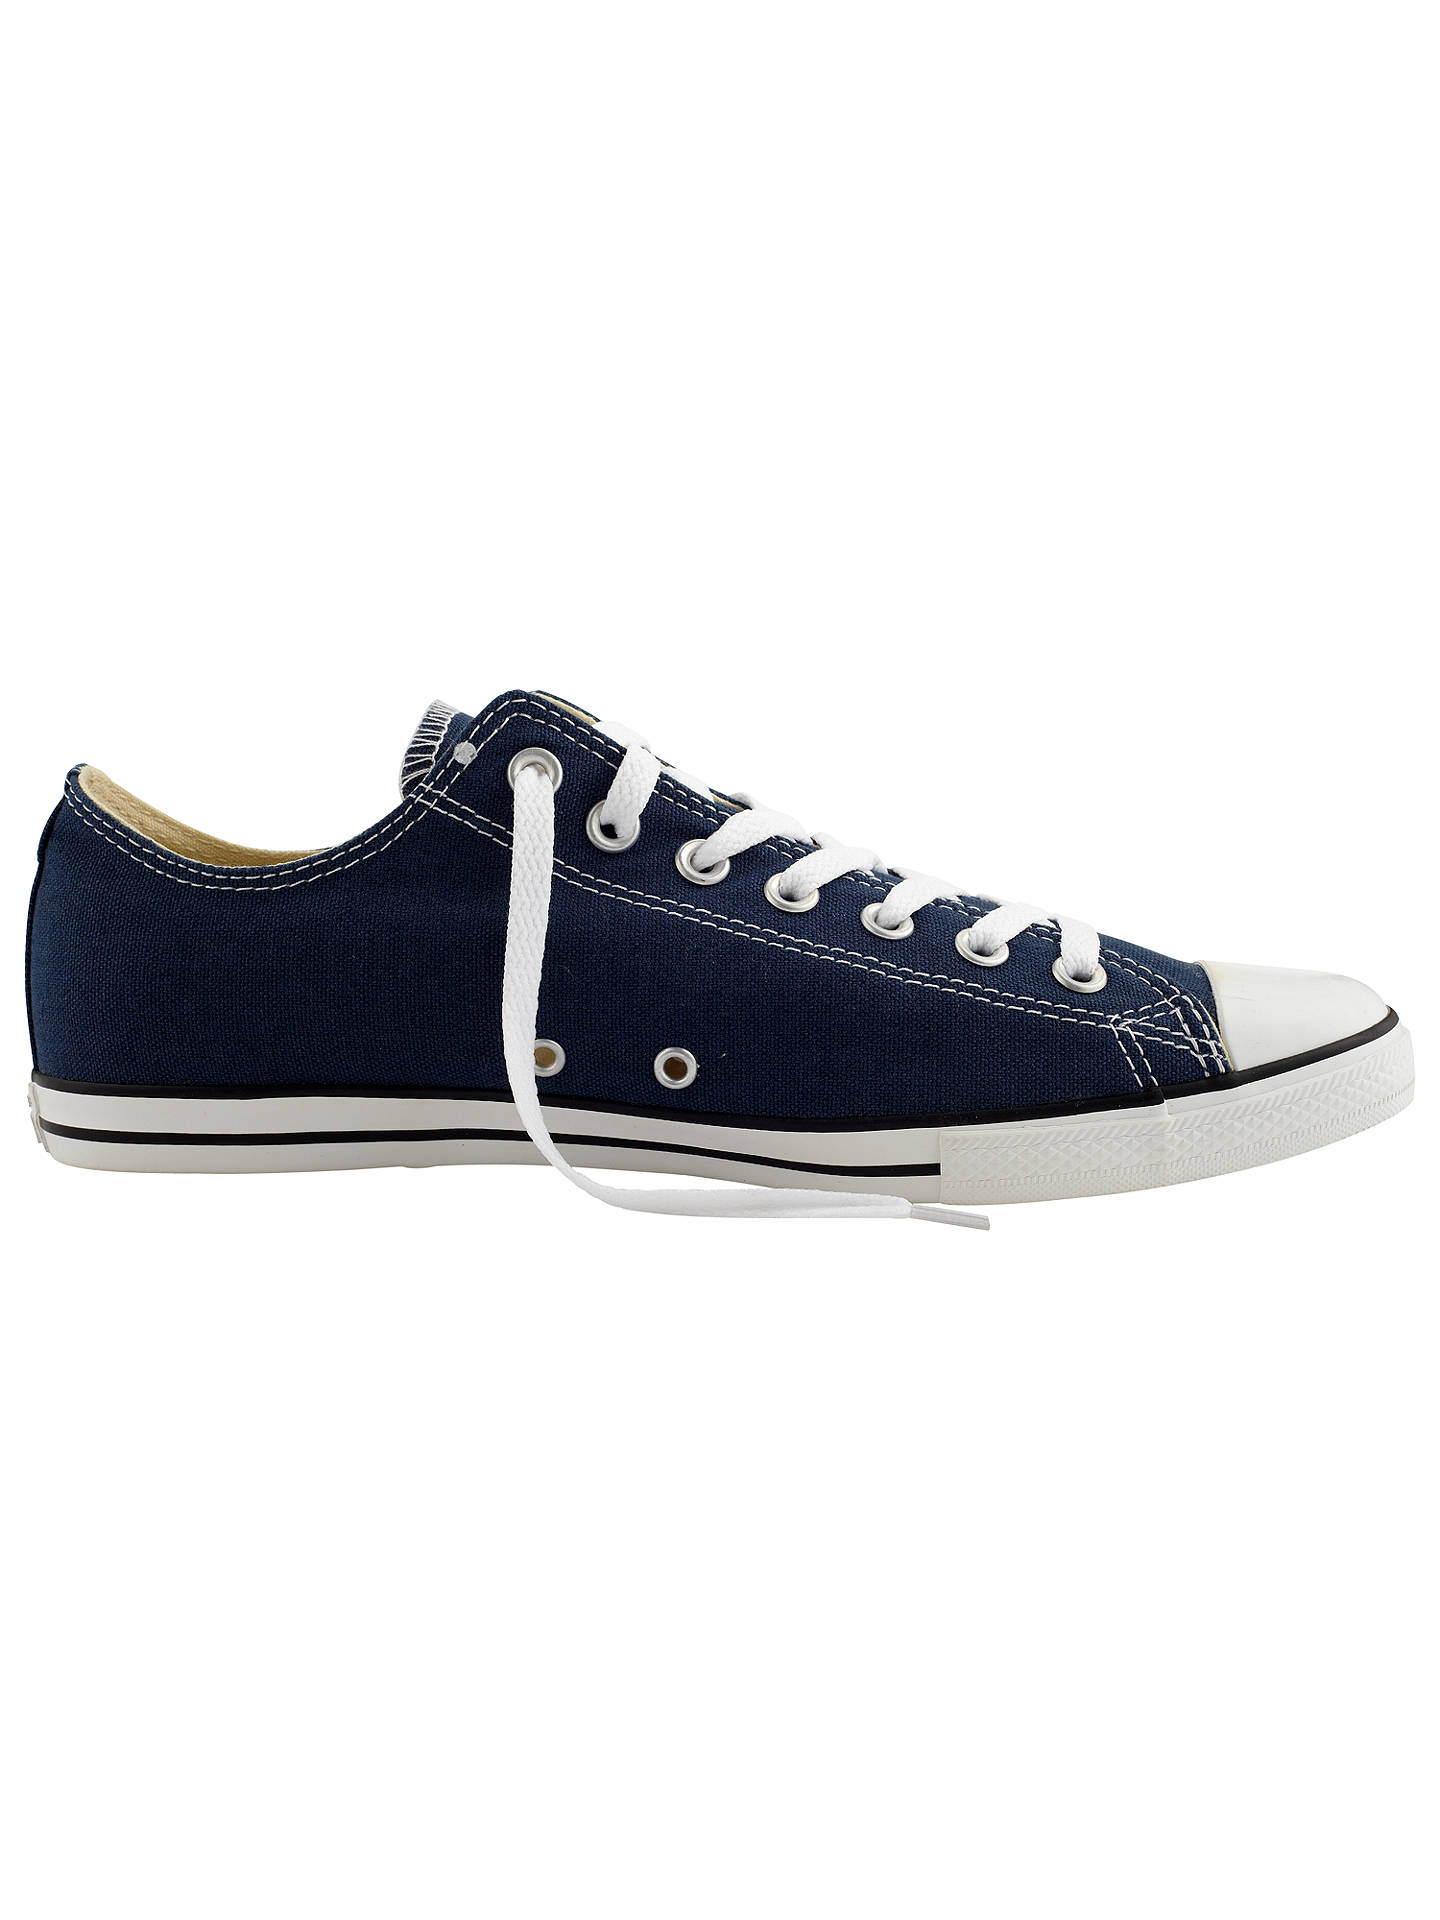 Converse Men's Chuck Taylor All Star Lean OX Trainers Navy